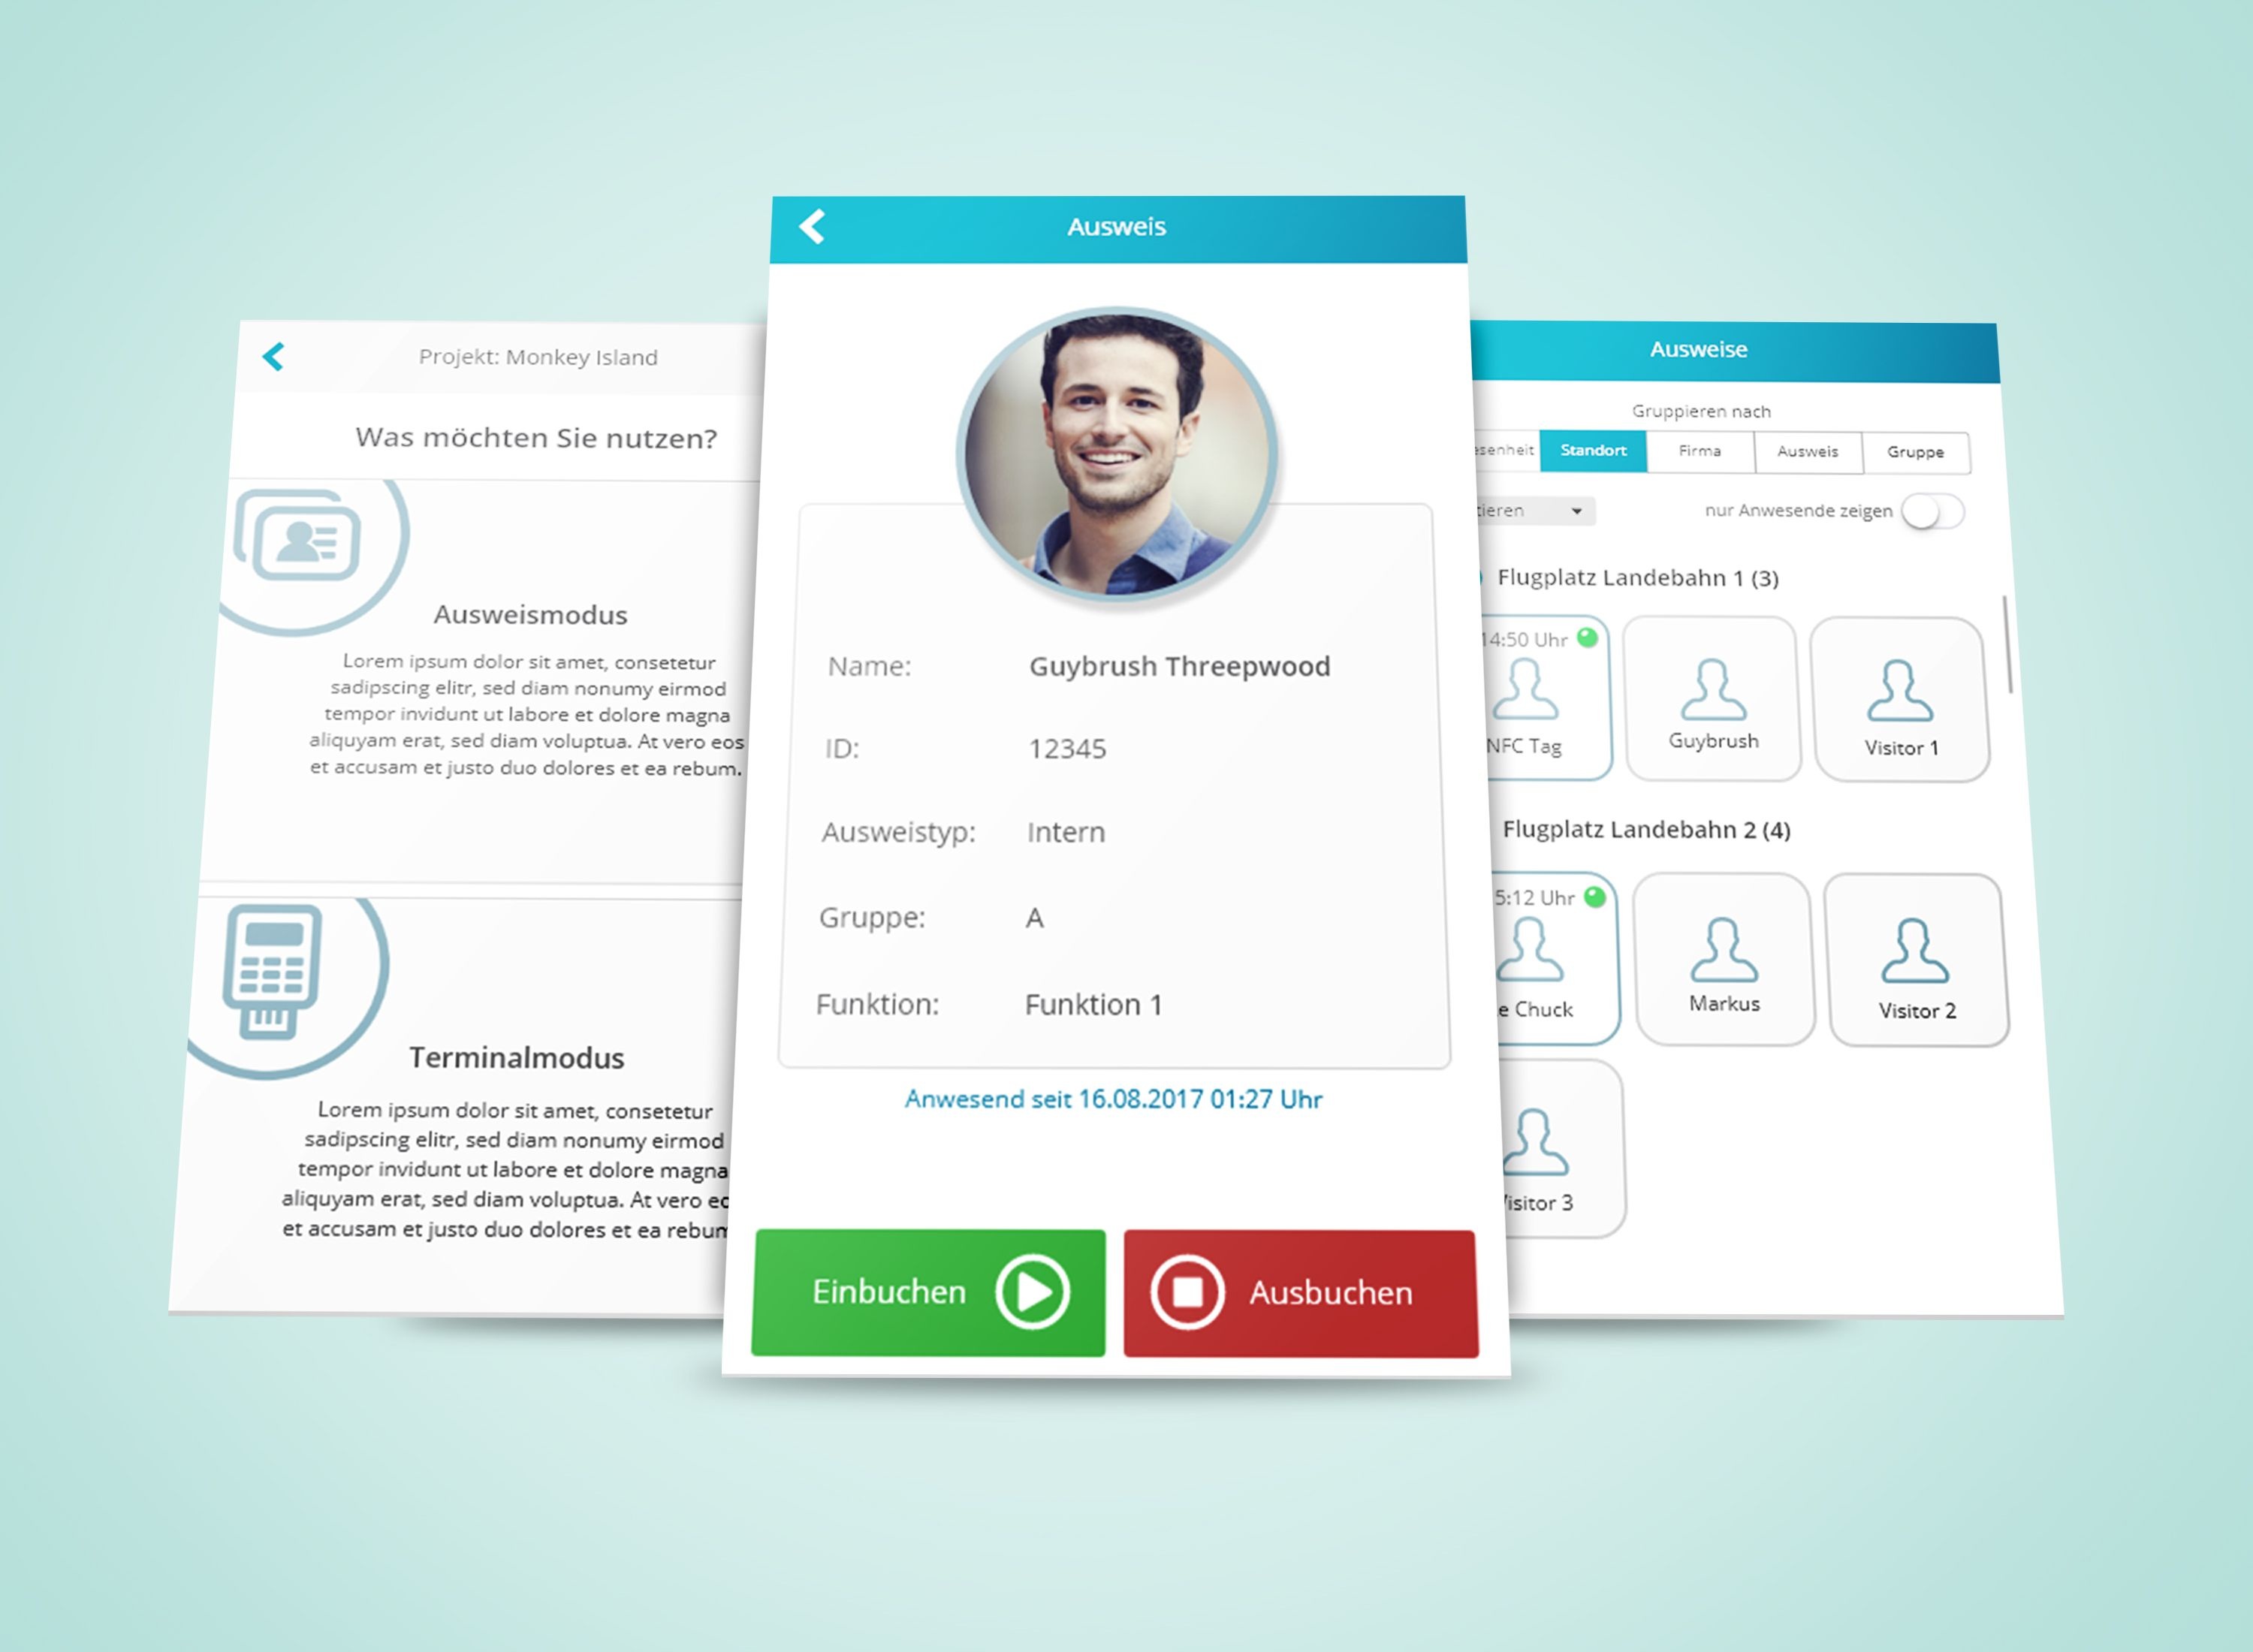 Simple mobile App design with profile, filter options